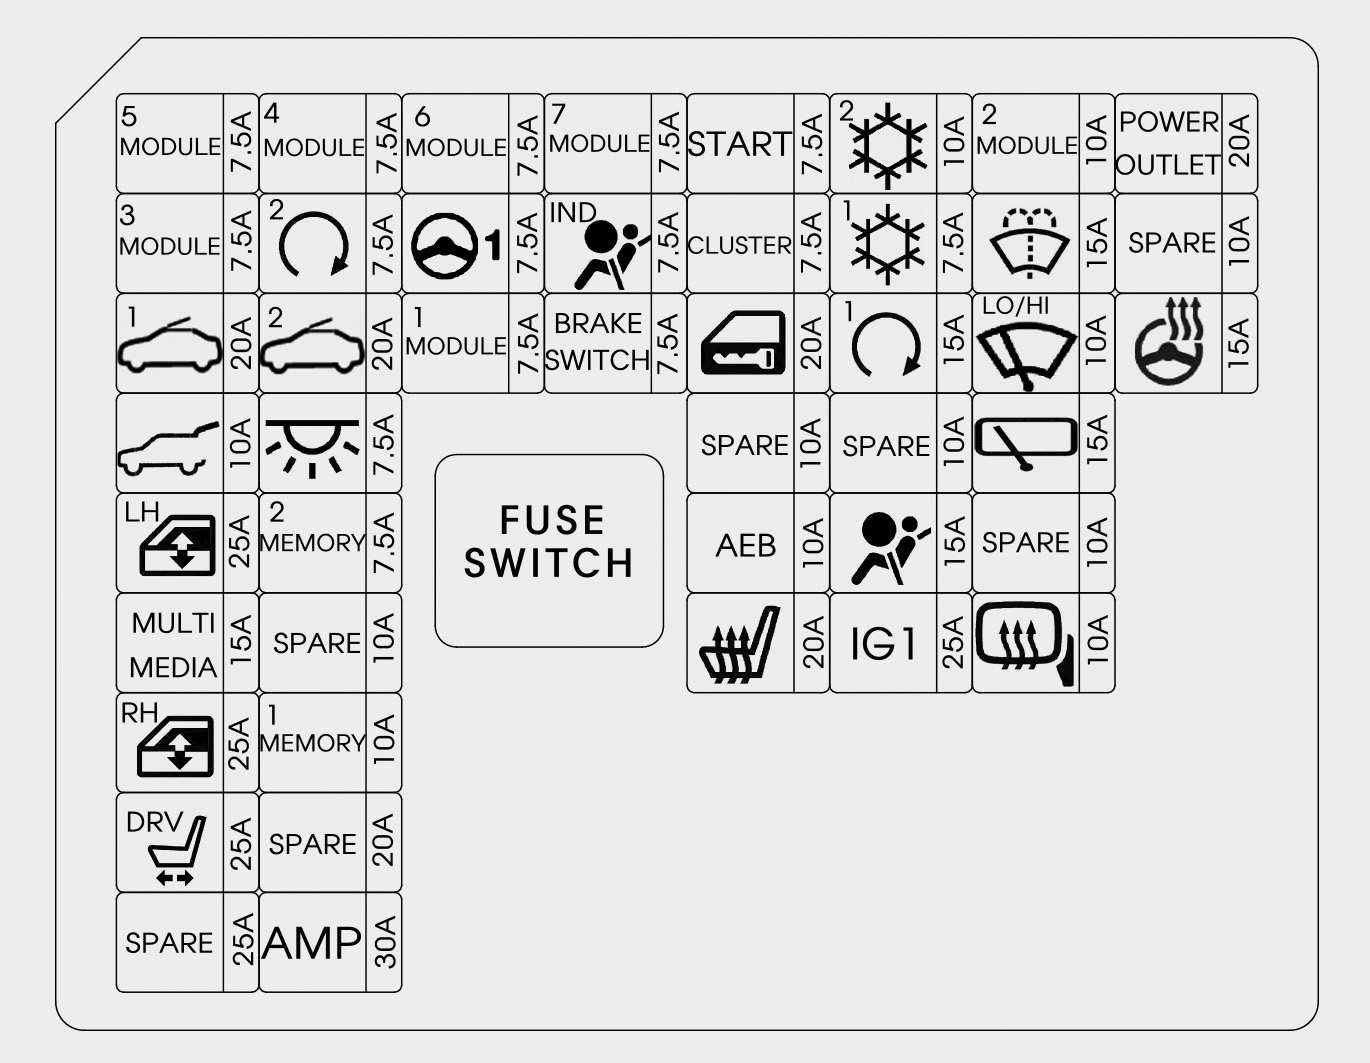 Hyundai Trajet Fuse Box Diagram | Wiring Diagram on truck trailer diagram, north river wiring diagram, forest river accessories, forest river voltage, forest river service, forest river plumbing diagram,